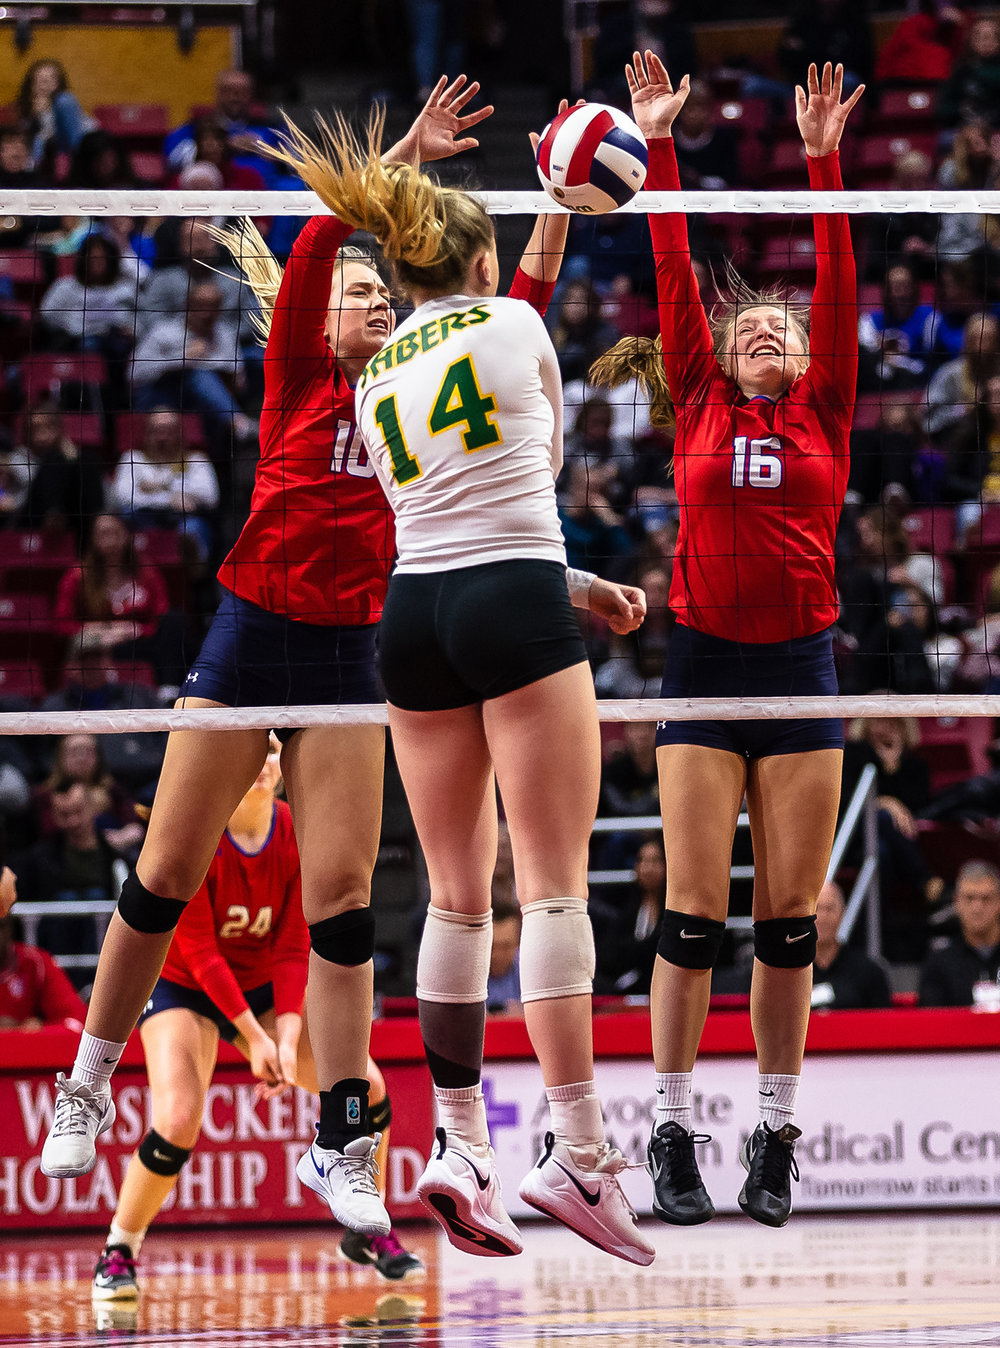 Pleasant Plains' Allie Edwards (10) joins in with Pleasant Plains' Macy Kanllakan (16) to block an attack from Champaign St. Thomas More's Allie Trame (14) during the Class 2A IHSA Volleyball State Final Tournament semifinals at Redbird Arena, Friday, Nov. 9, 2018, in Normal, Ill. [Justin L. Fowler/The State Journal-Register]